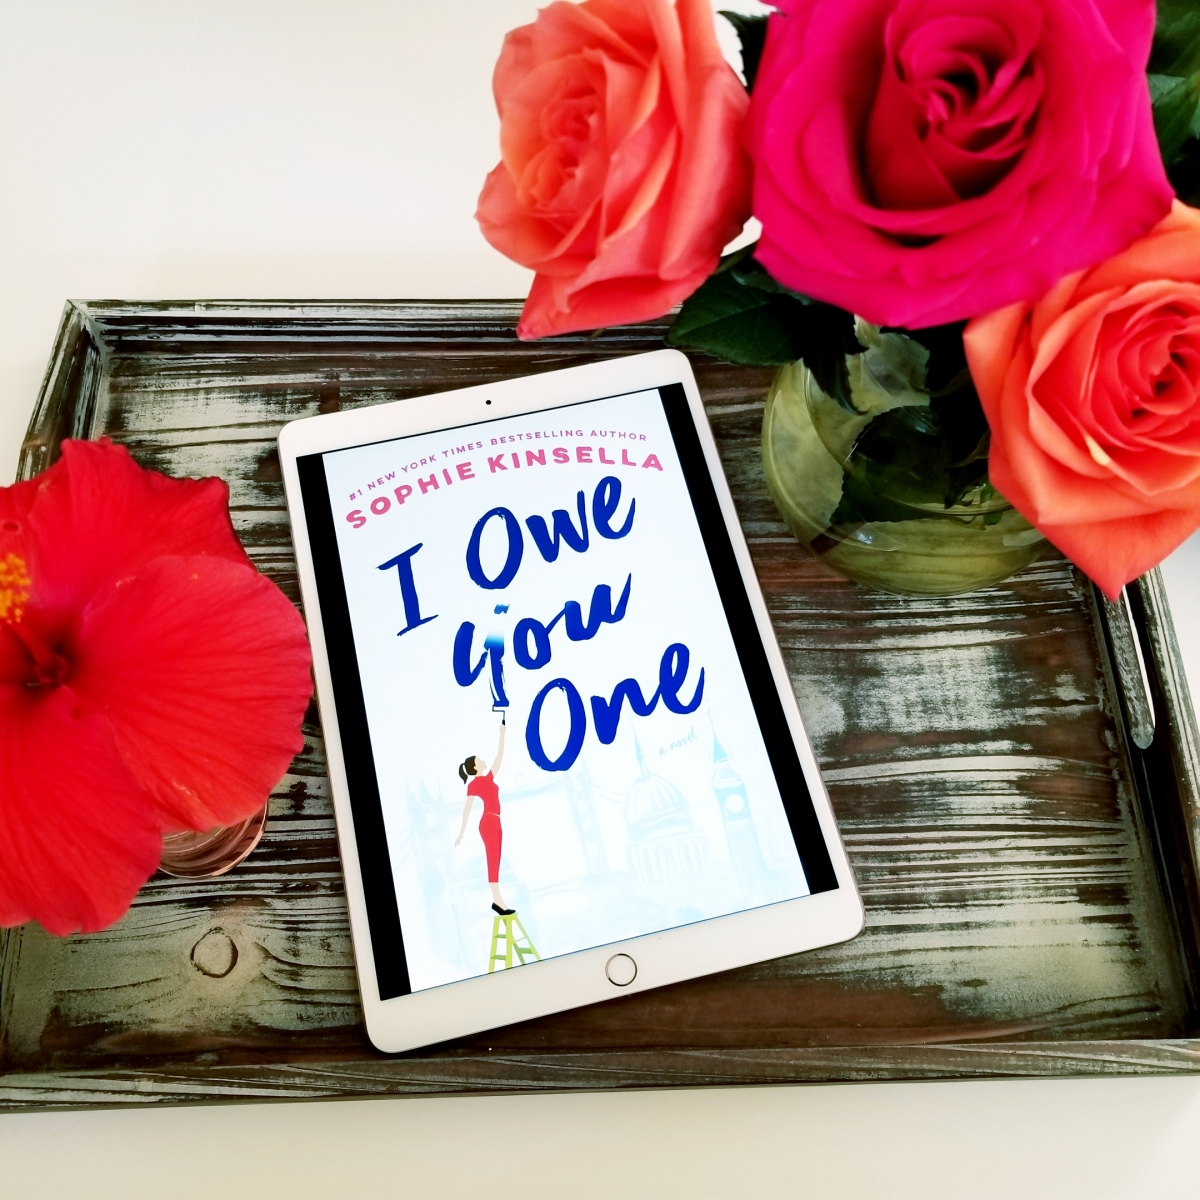 I Owe You One by Sophie Kinsella #bookreview #tarheelreader #throweyou @kinsellasophie @randomhouse #thedialpress #ioweyouone